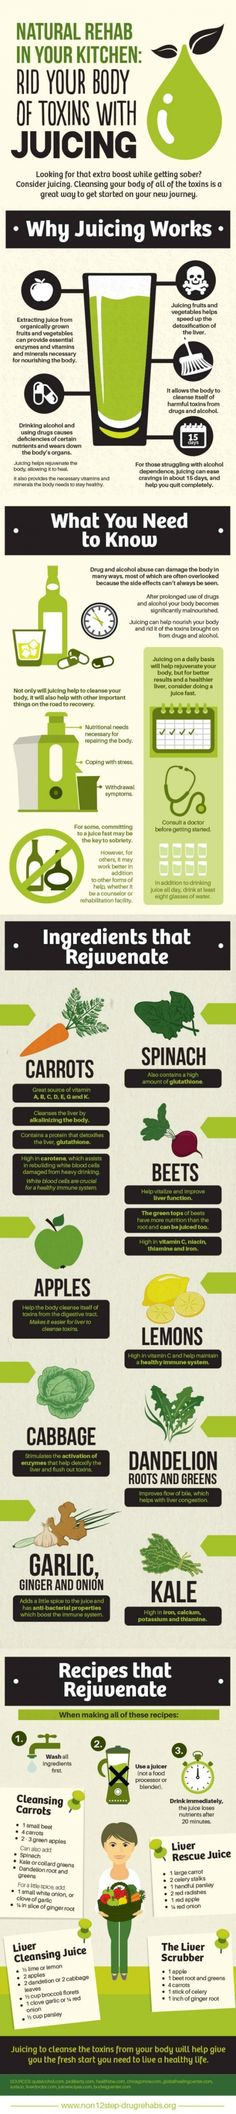 17 #Juicing Infographics That'll Help You Stay Healthy ...